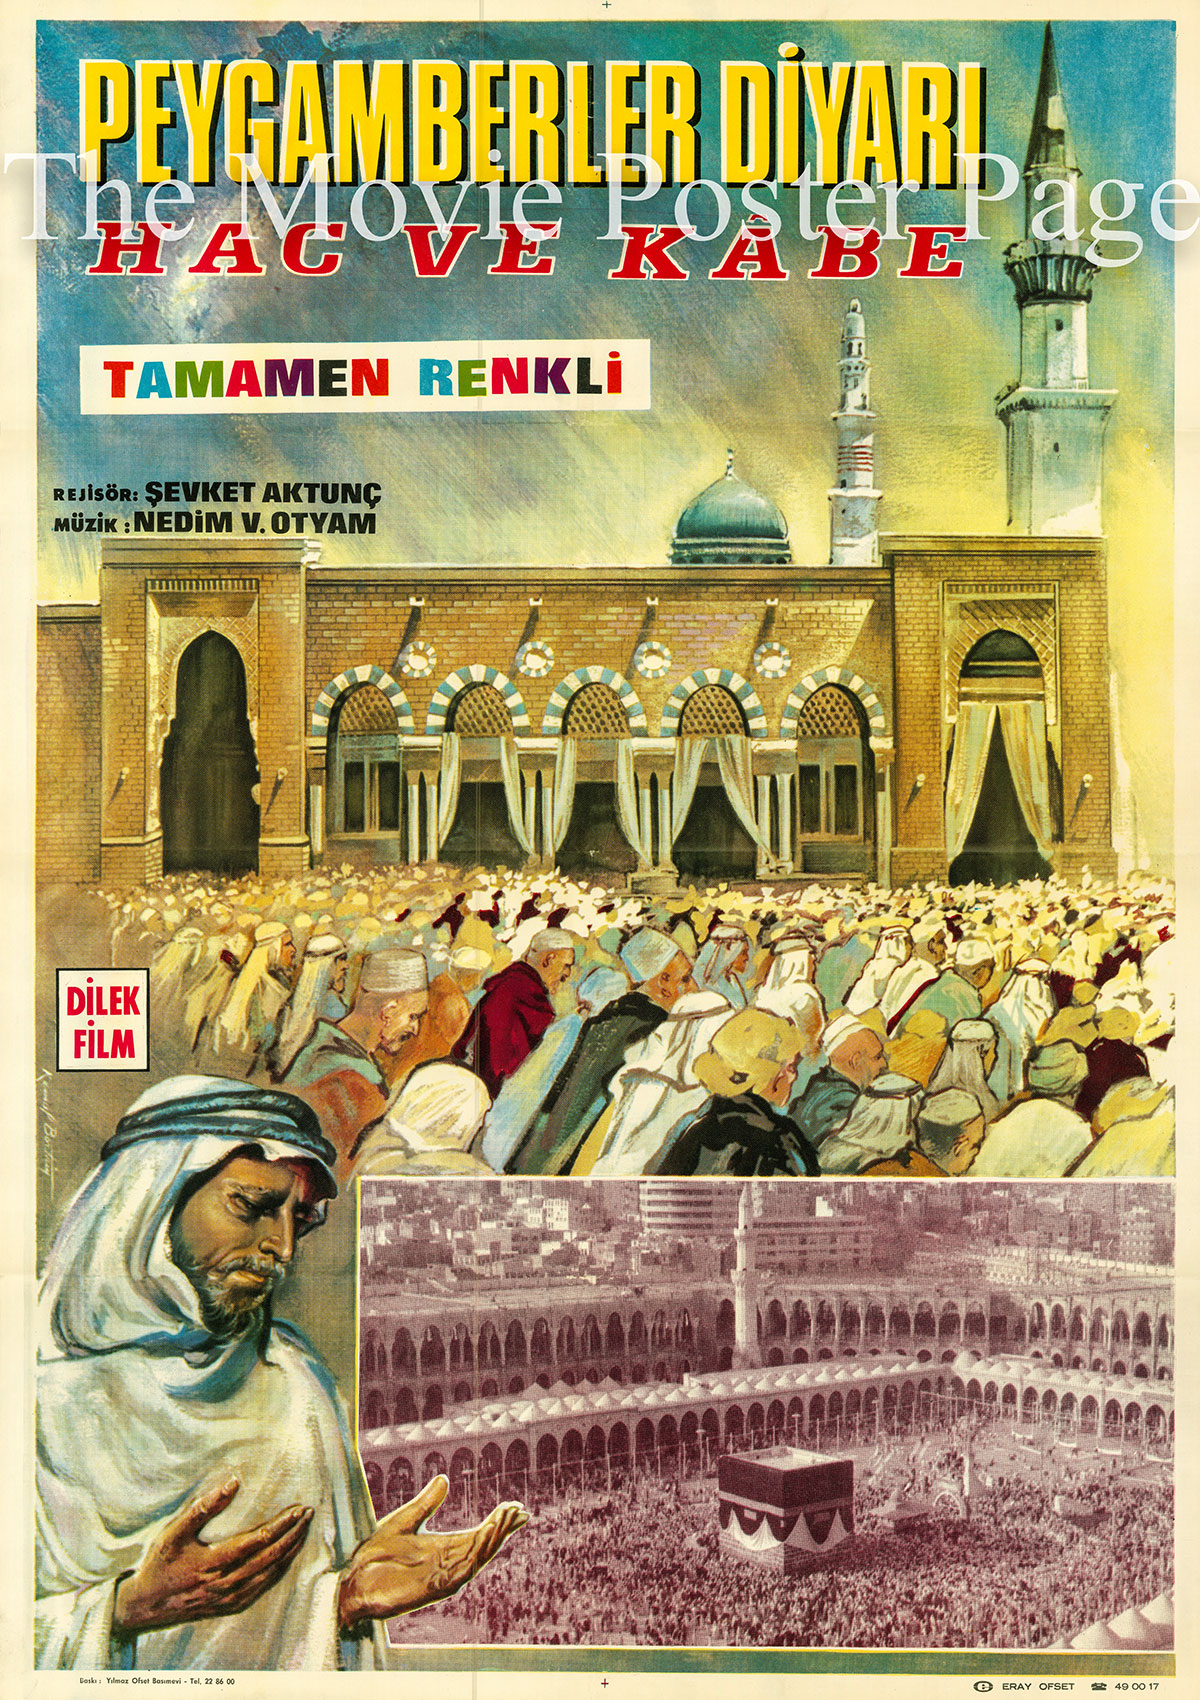 Pictured is a Turkish one-sheet promotional poster for the 1966 Sevket Aktunc documentary film Land of the Prophet: Haj and Kaaba, narrated by Toron Karacaoglu.